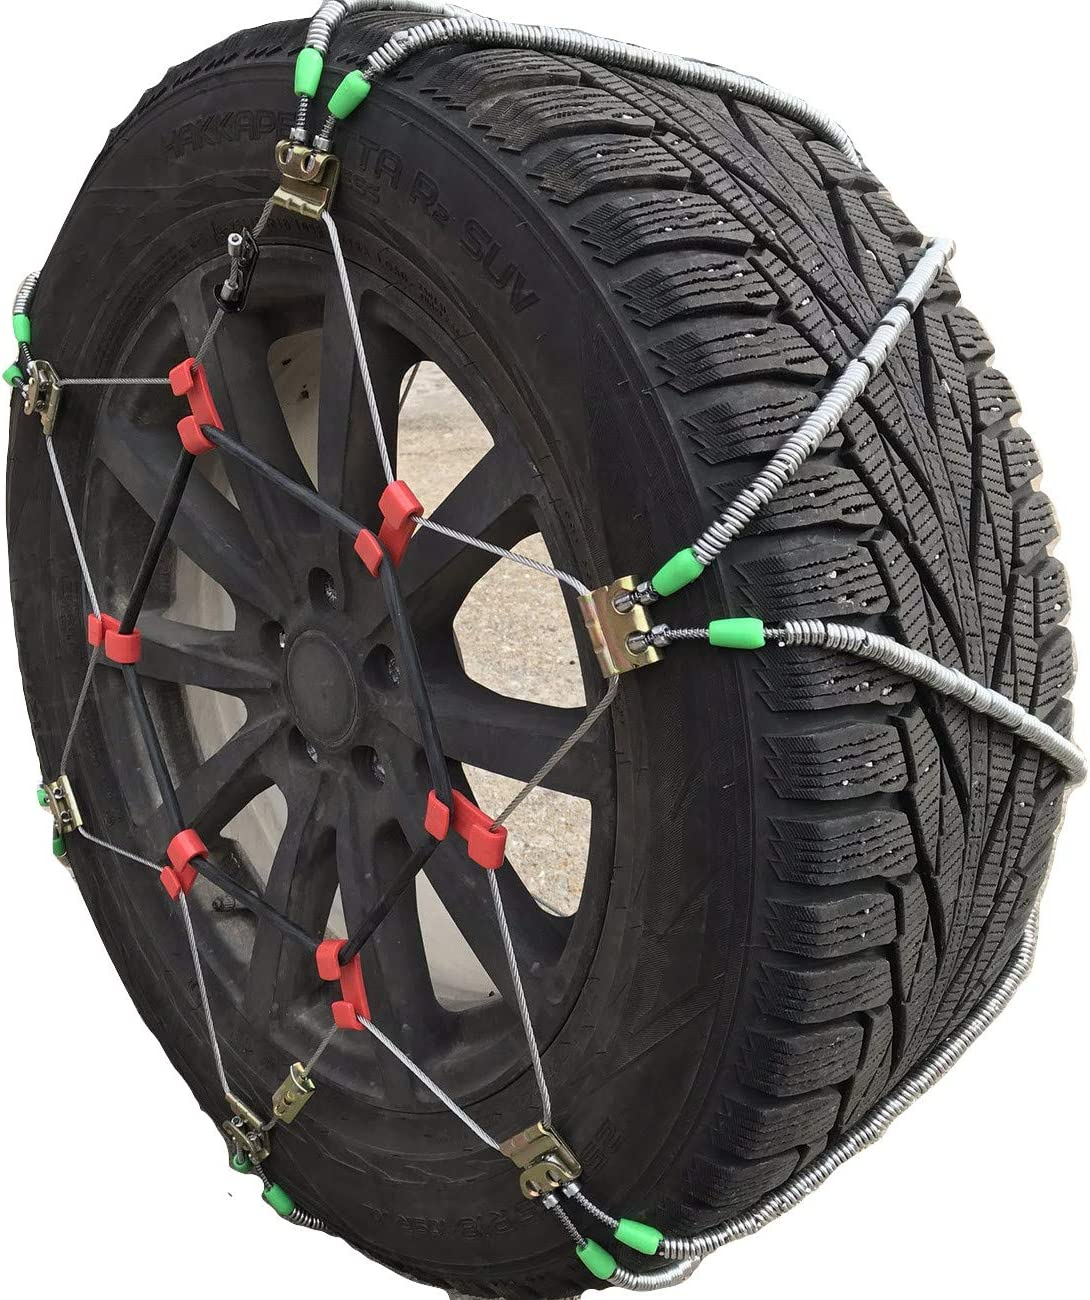 TireChain.com 25 8.5 14 Set of 2 25x8.5x14 Rubber Tractor Tire Chains